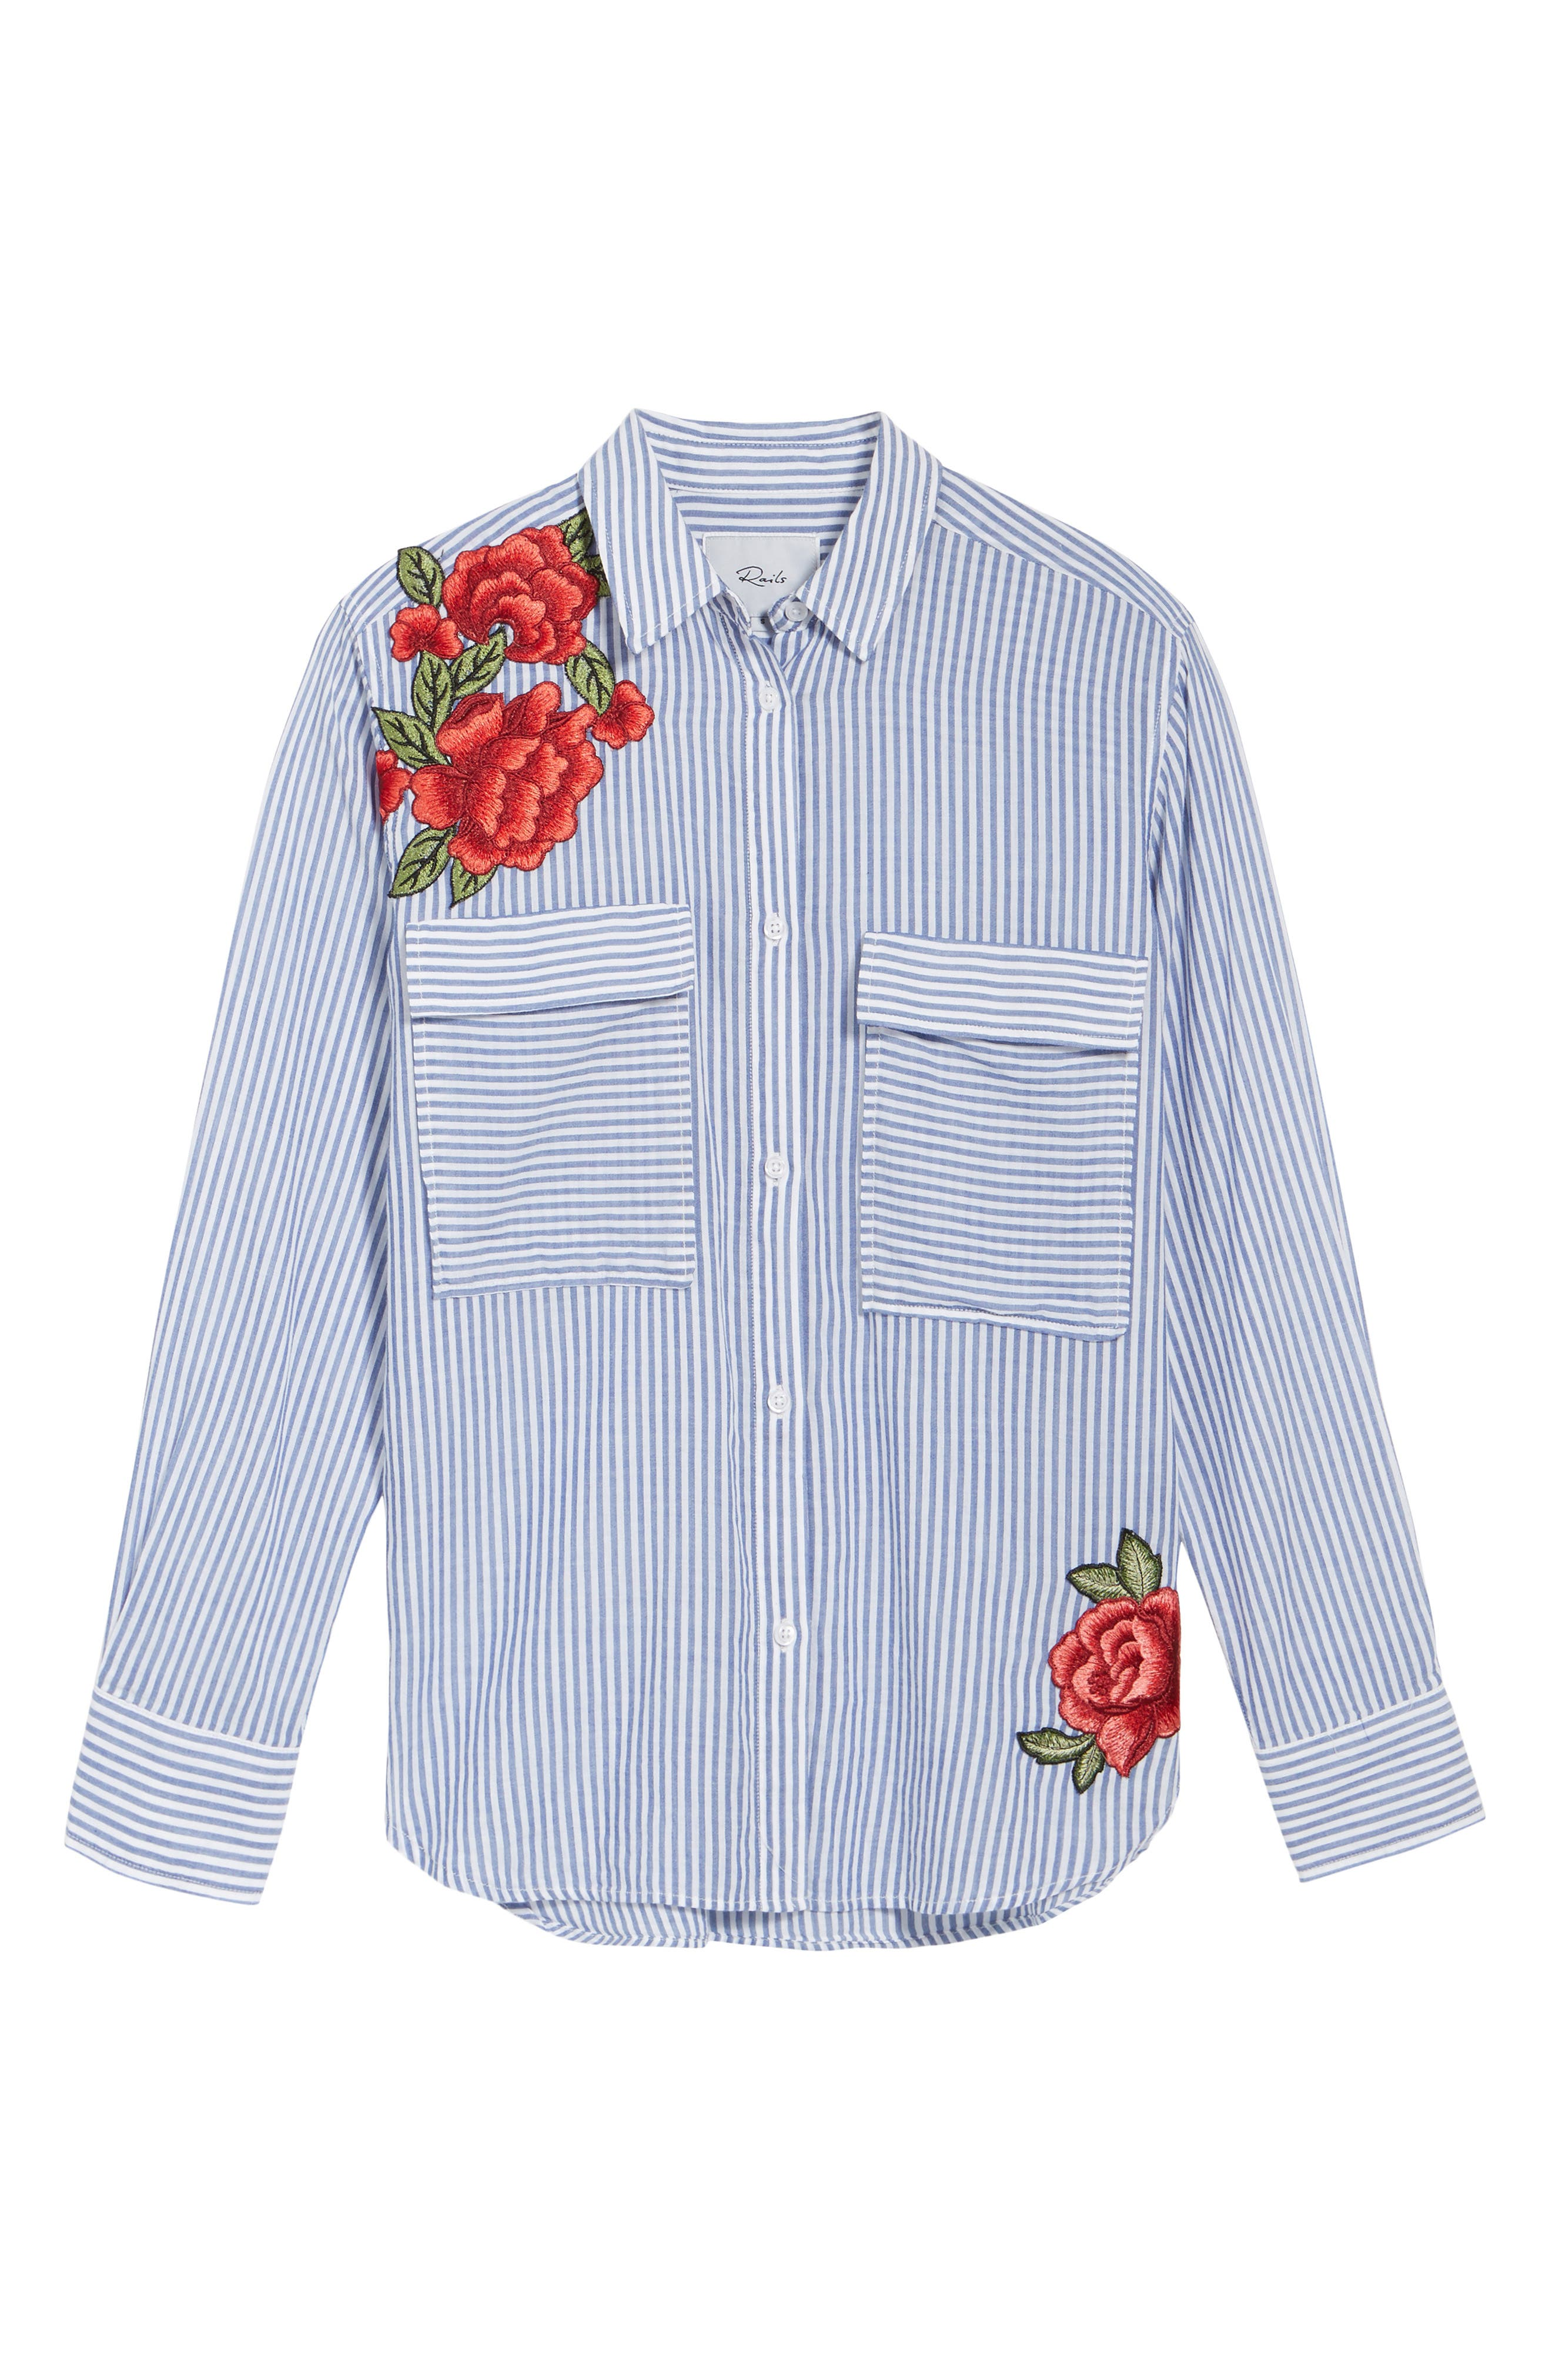 Frances Embroidered Stripe Shirt,                             Alternate thumbnail 6, color,                             425